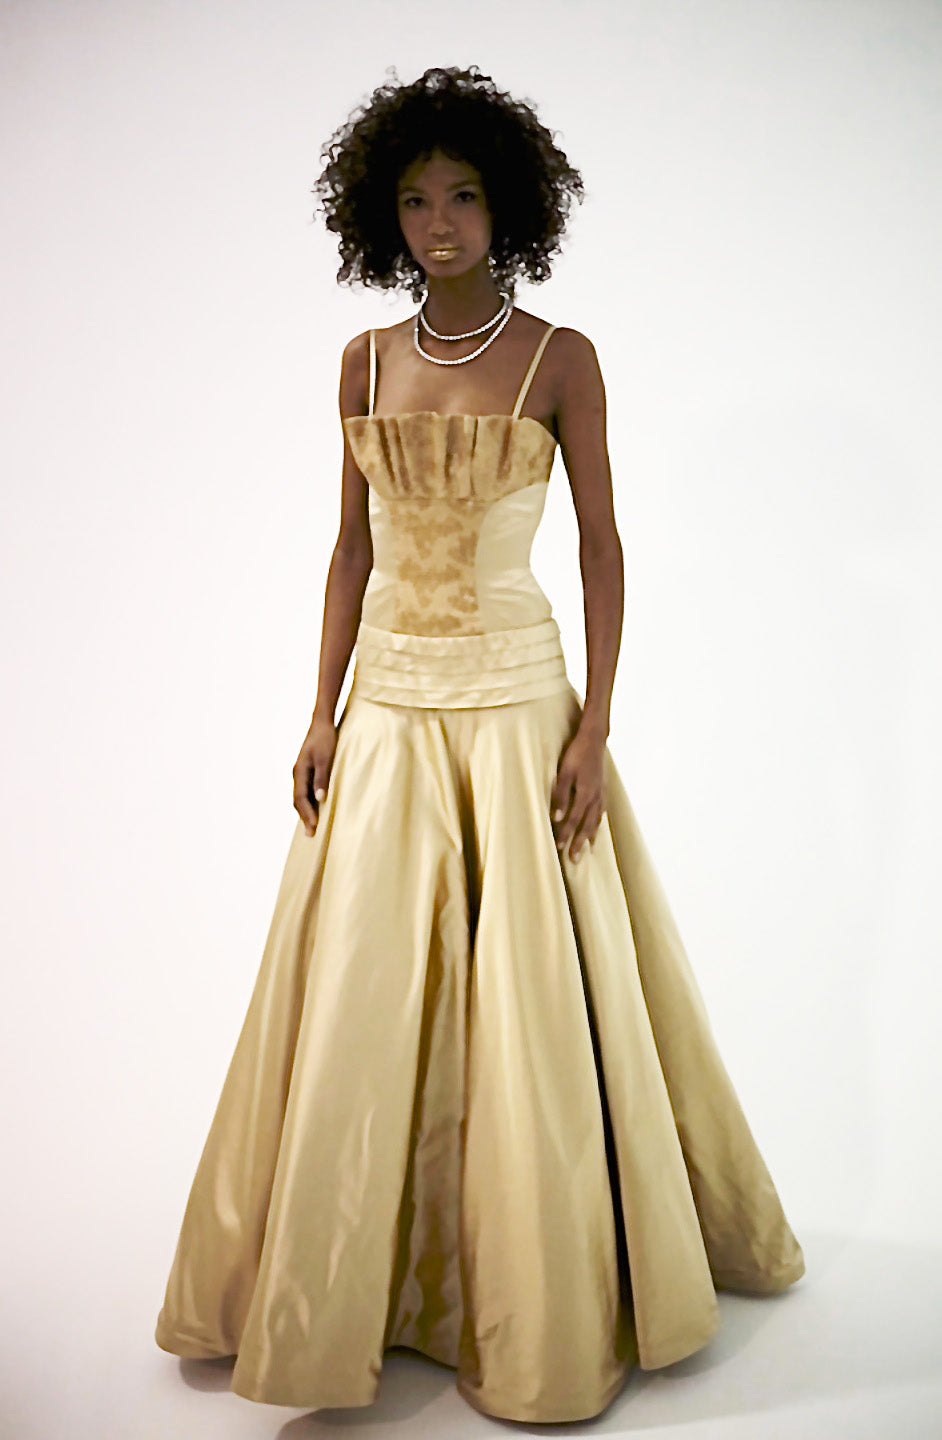 Yellow Goldish/Center Front Sequence Quadro Pleated w/Tulles Under Skirt Ball Gown